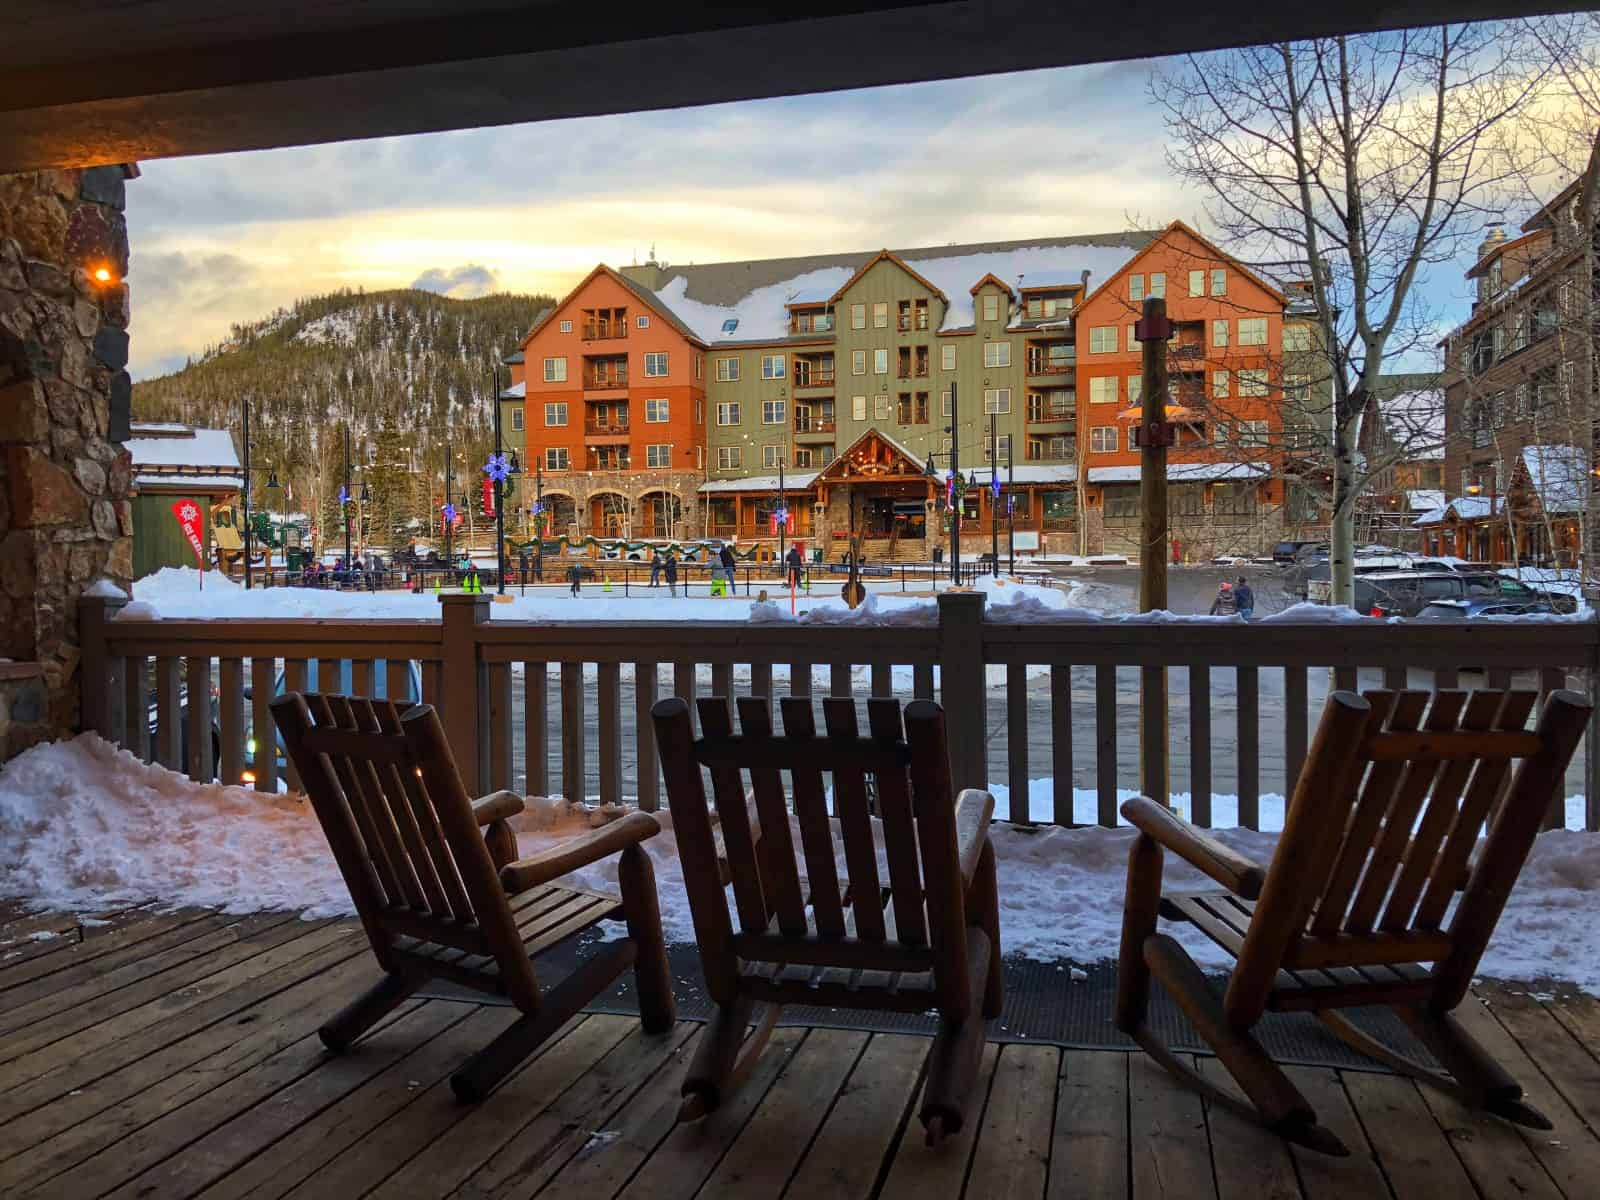 Where to stay at Keystone Resort with kids